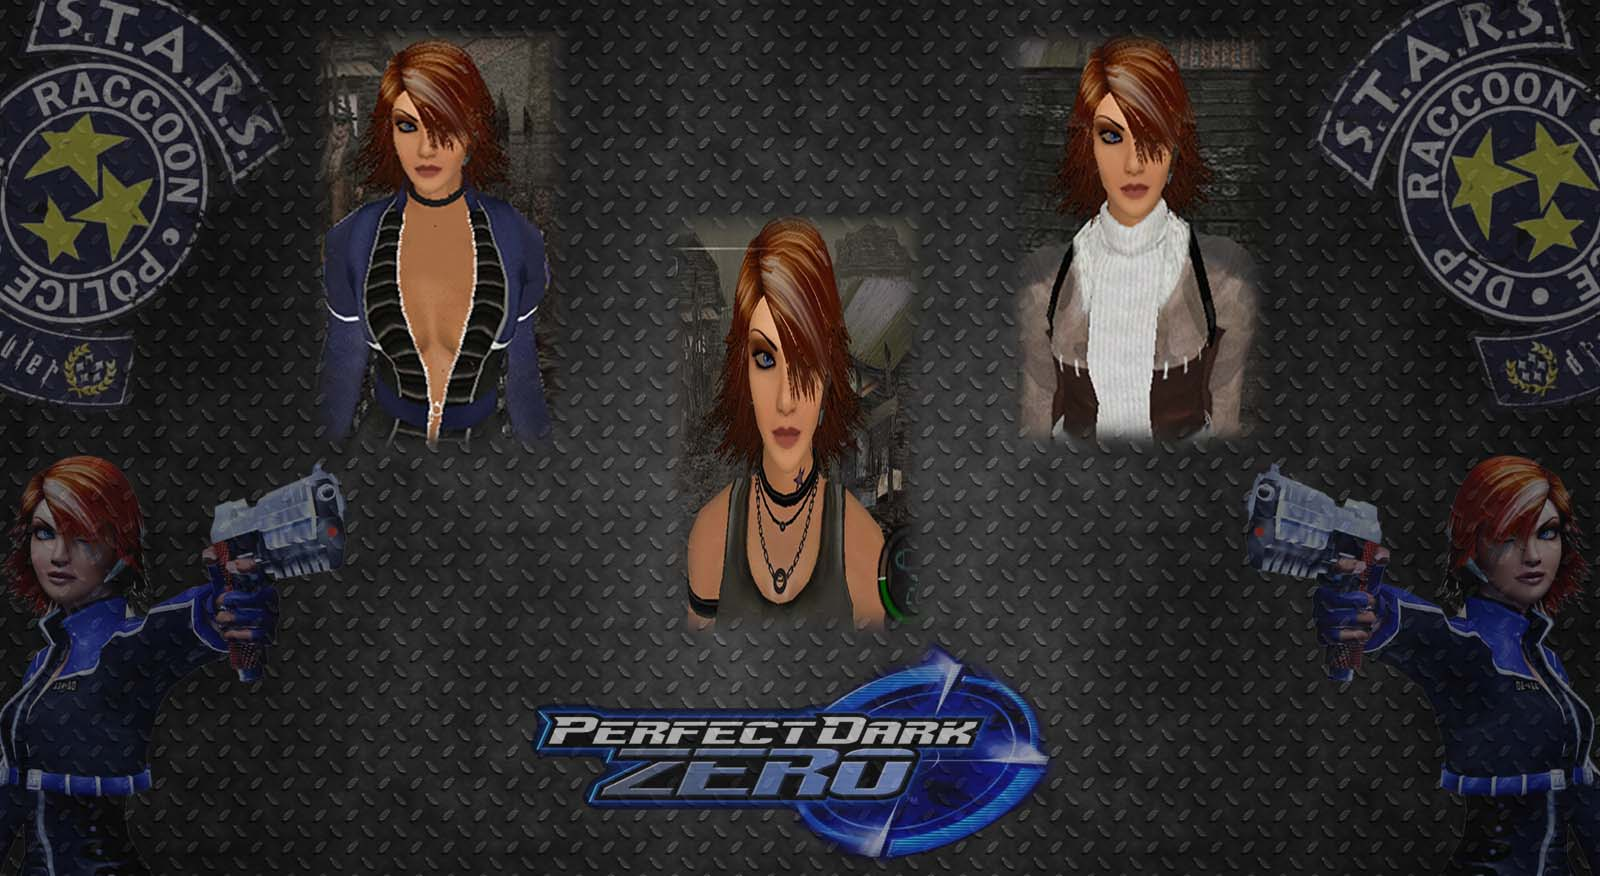 [OFFLINE] Joanna Dark Perfect Dark Zero Costume Pack Render11